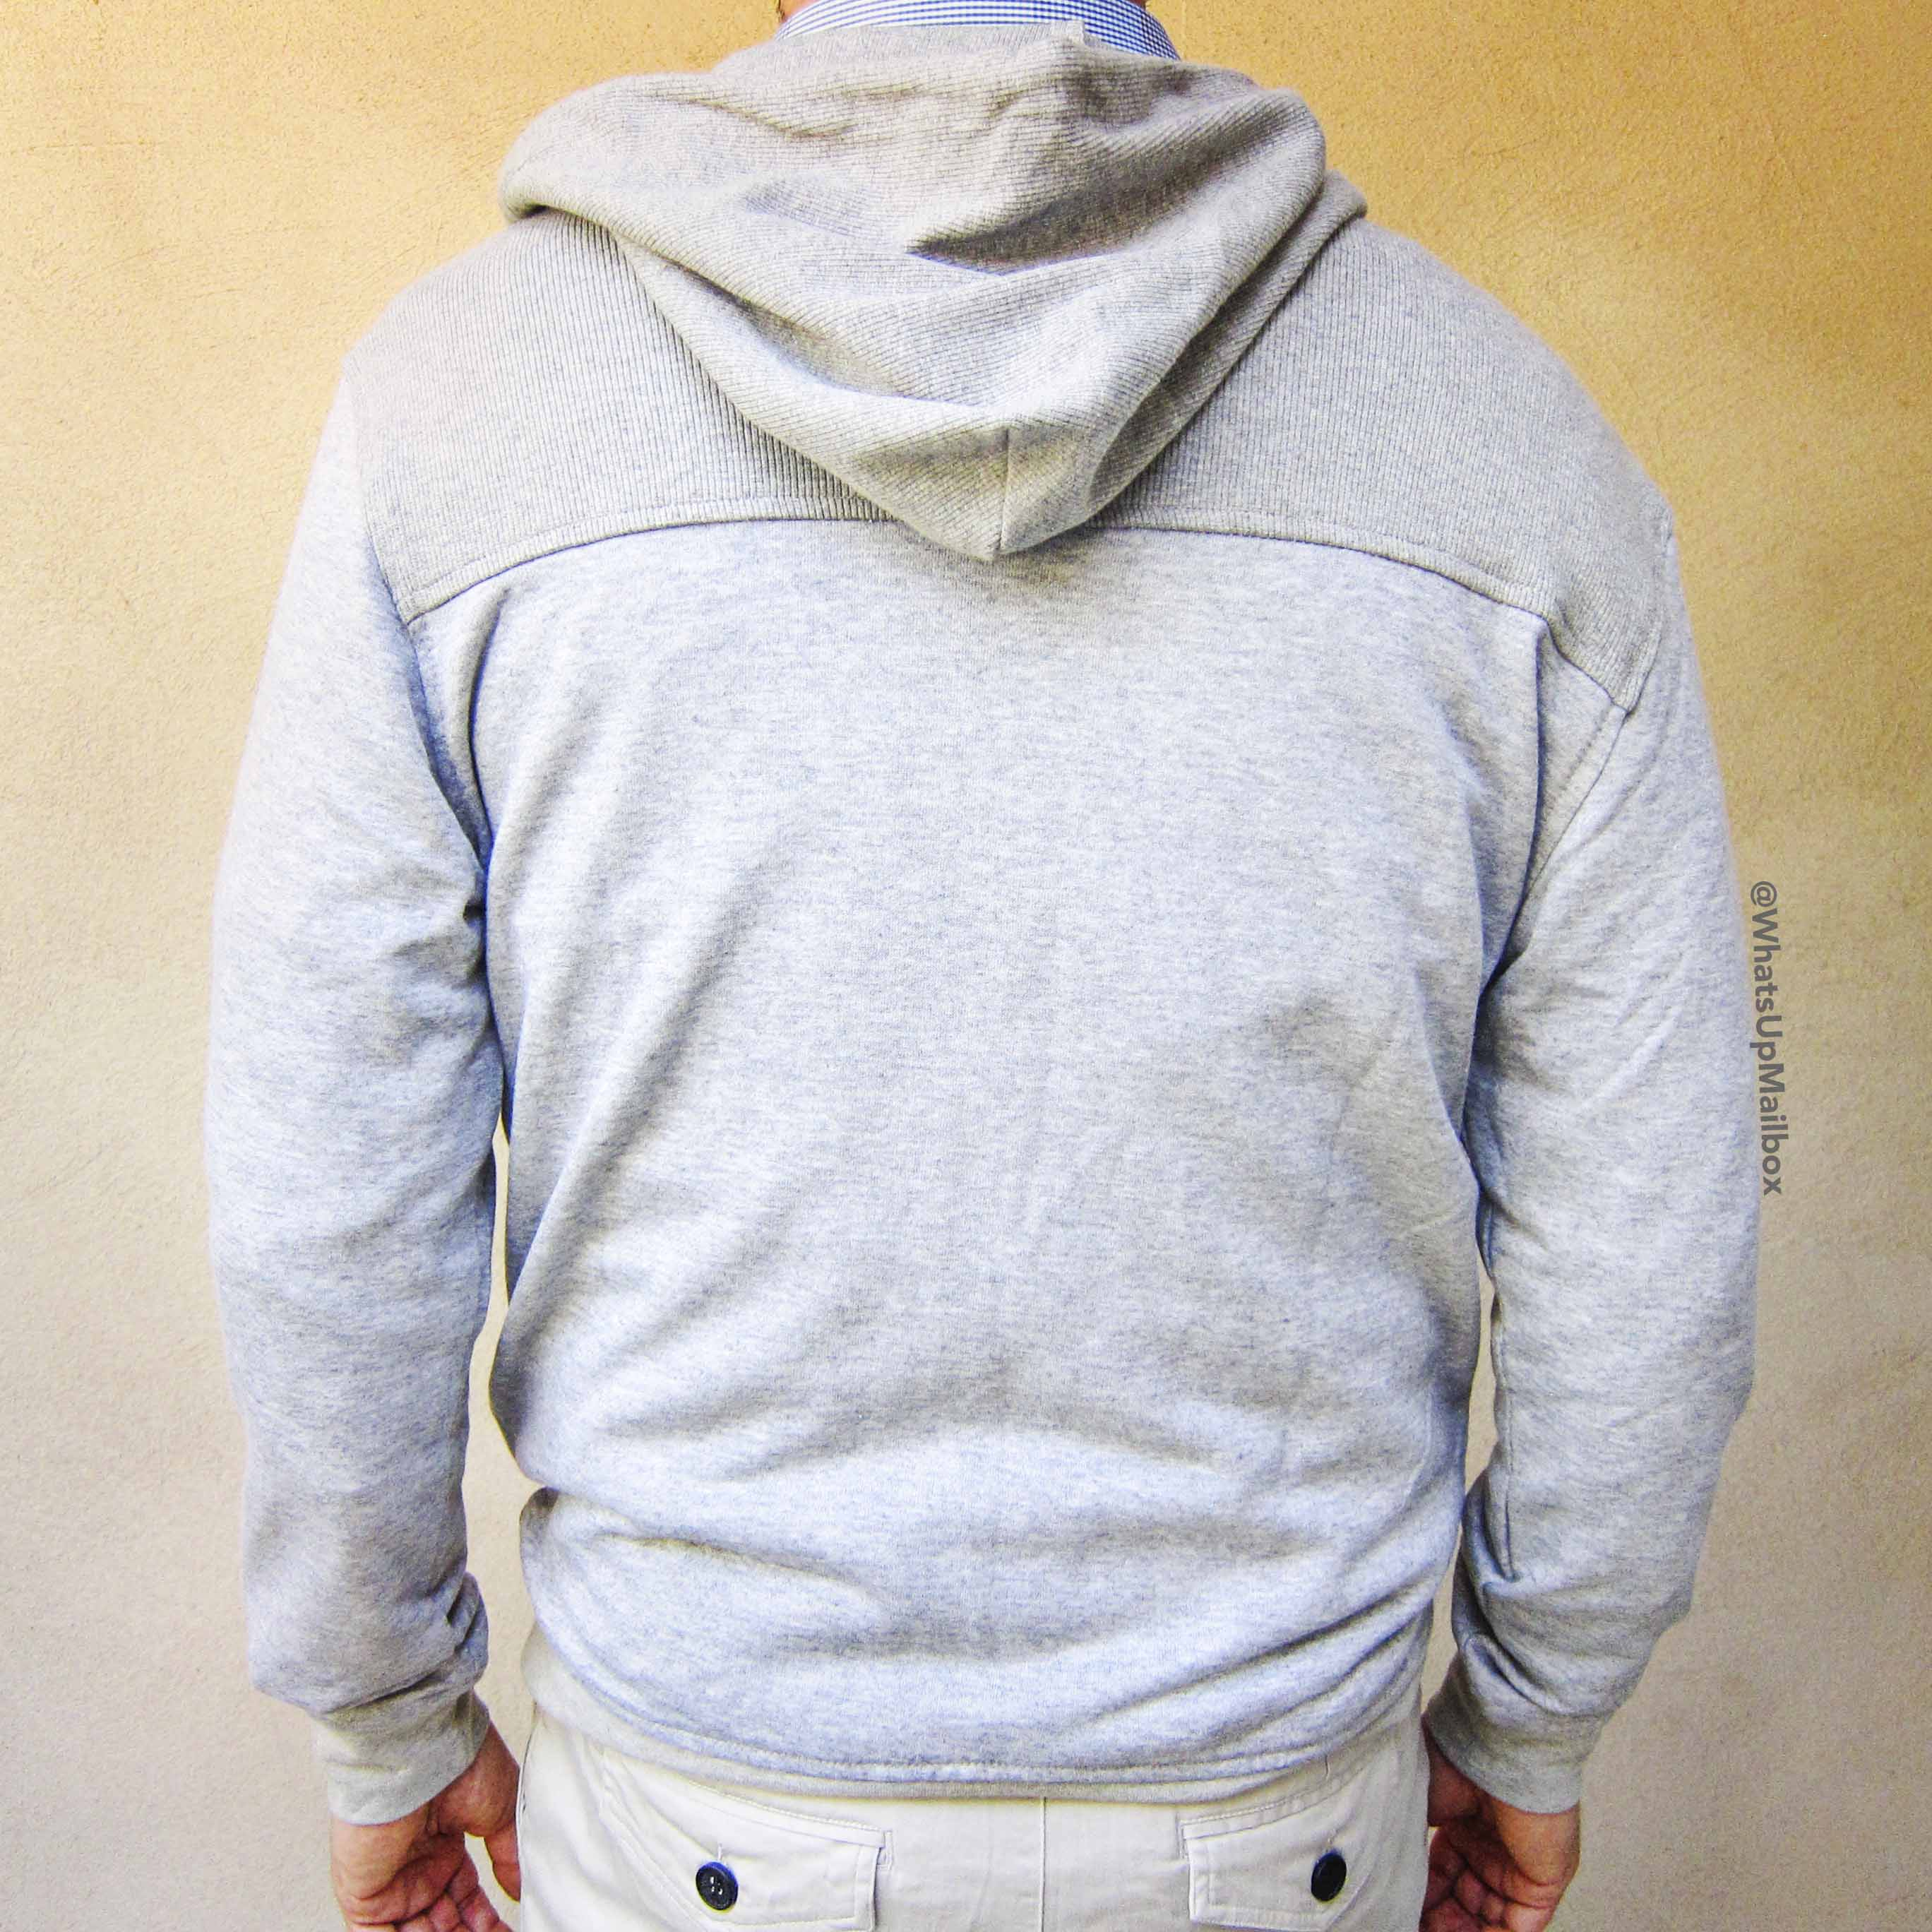 Trendy Butler - Standard Issue NYC Grey Sweater